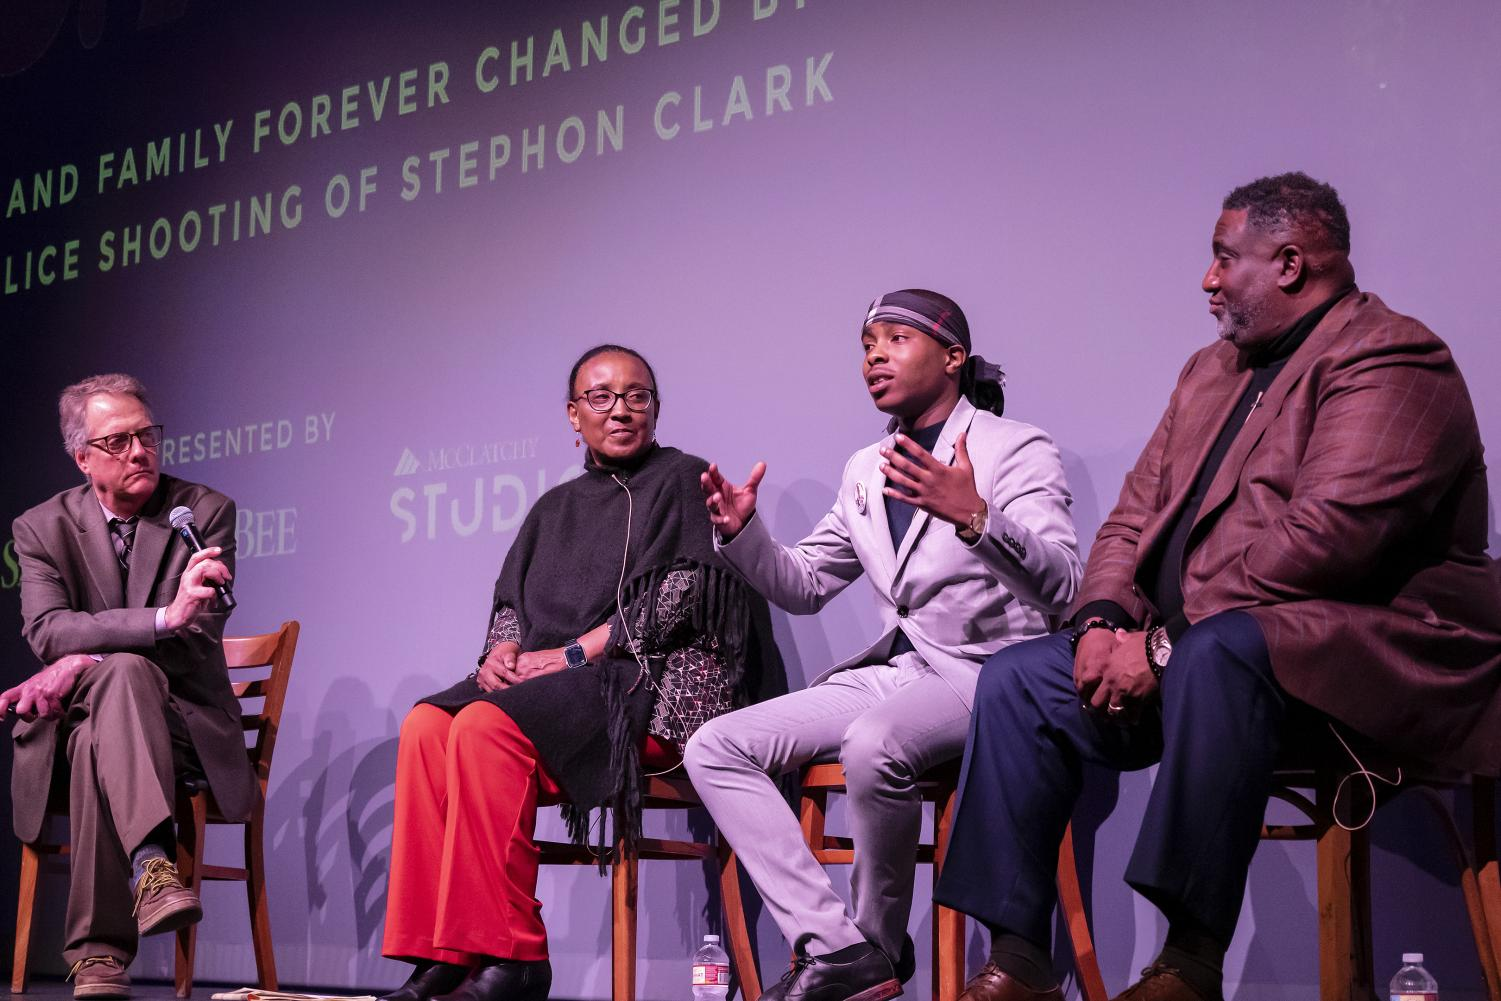 """(left to right) Sam Stanton, Sacramento Bee reporter; Jackie Rose, Rose Family Creative Empowerment; Stevante Clark, Stephon Clark's brother; and Dr. Tecoy Porter, pastor at Genesis Church and the president of the National Action Network for the Sacramento Chapter; give a Q&A after the second screening of """"'S.A.C.': A City and Family Forever Changed by the Police Shooting of Stephon Clark"""" at The Sofia Tsakopoulos Center for the Arts in Sacramento, California, Thursday, Dec. 12, 2019. Porter's church resides roughly 100 yards away from where Stephon Clark was shot and killed by police in 2018. (Sara Nevis for Sacramento City College Express)"""